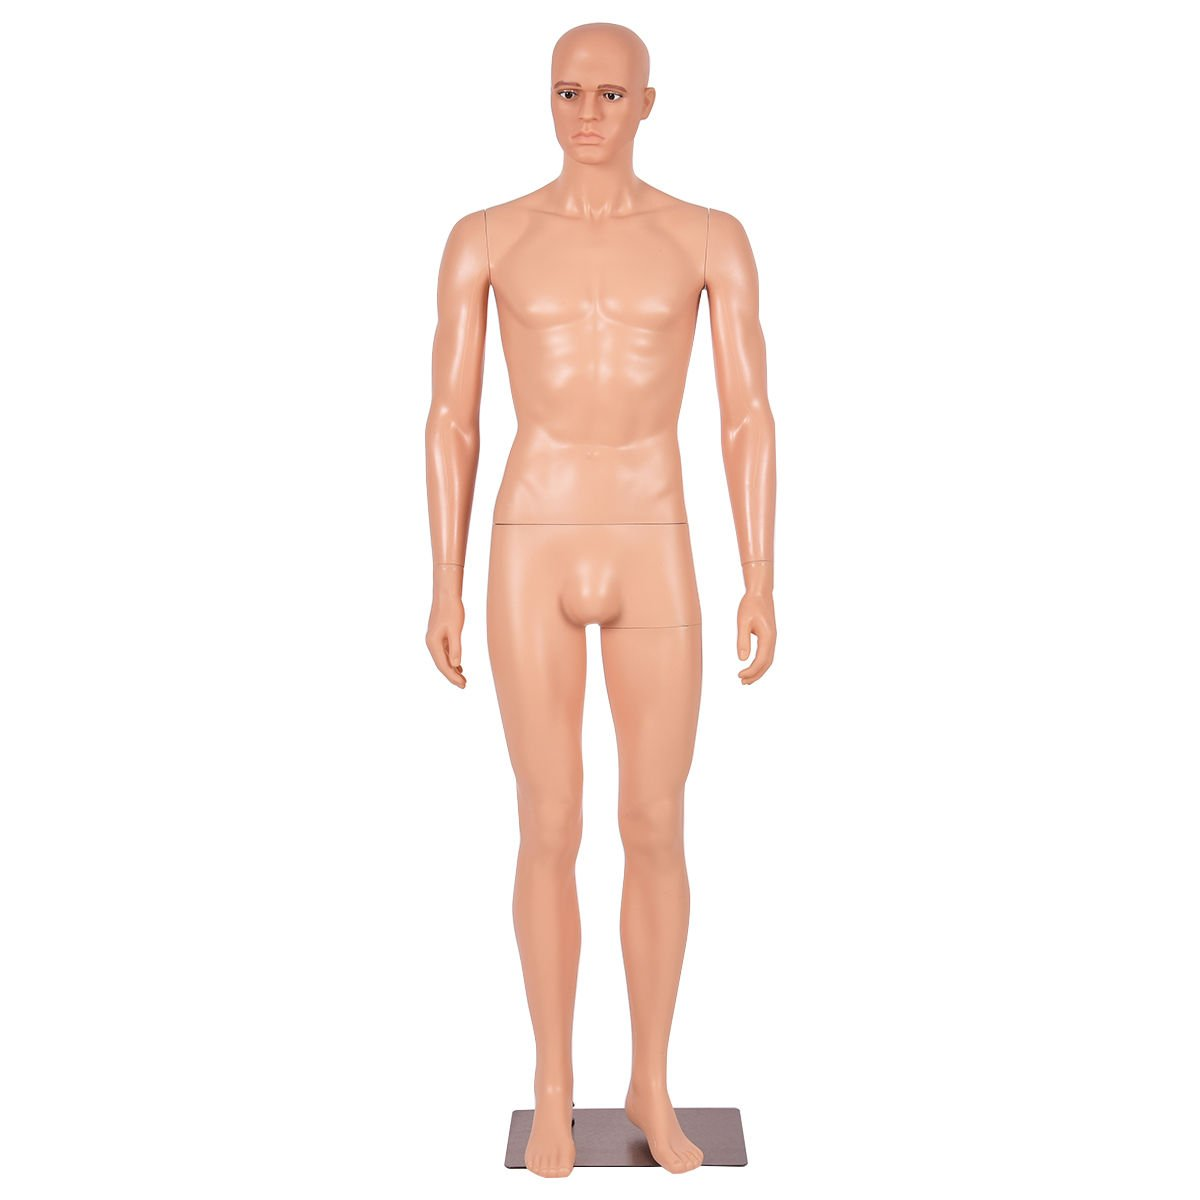 Giantex Male Mannequin Plastic Realistic Display Head Turns Dress Form w/Base HW51122